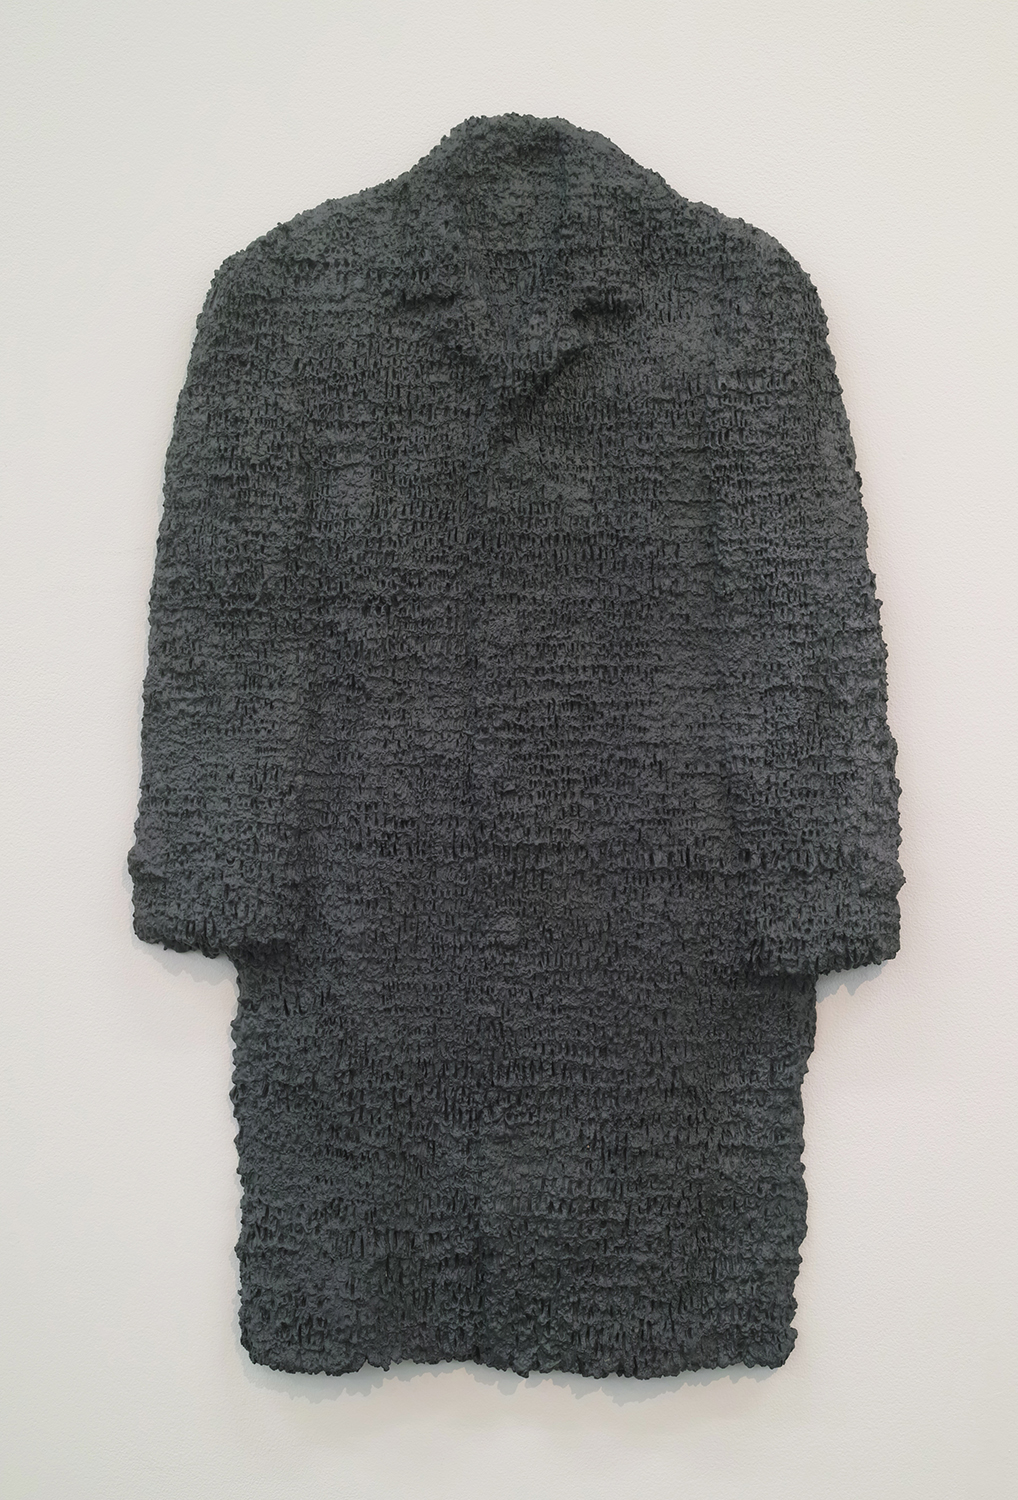 coat 2017-11(01)|cast iron|500 x 300 x 28 mm|2017